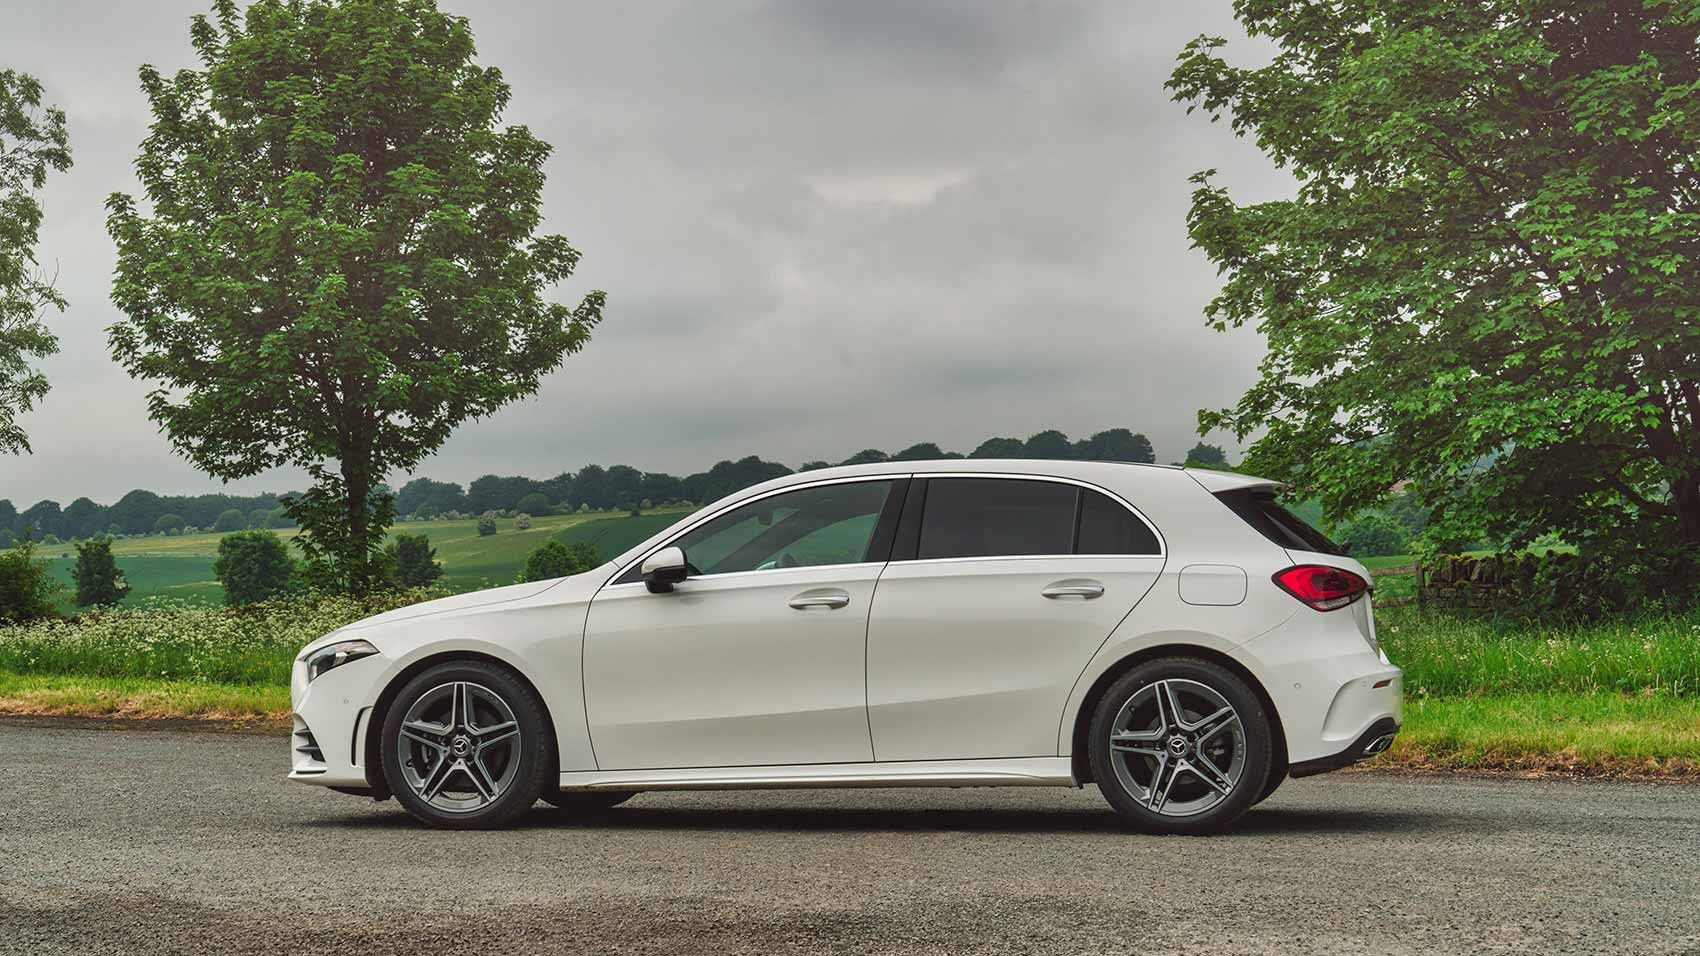 Mercedes A-class review: every powertrain driven on UK roads